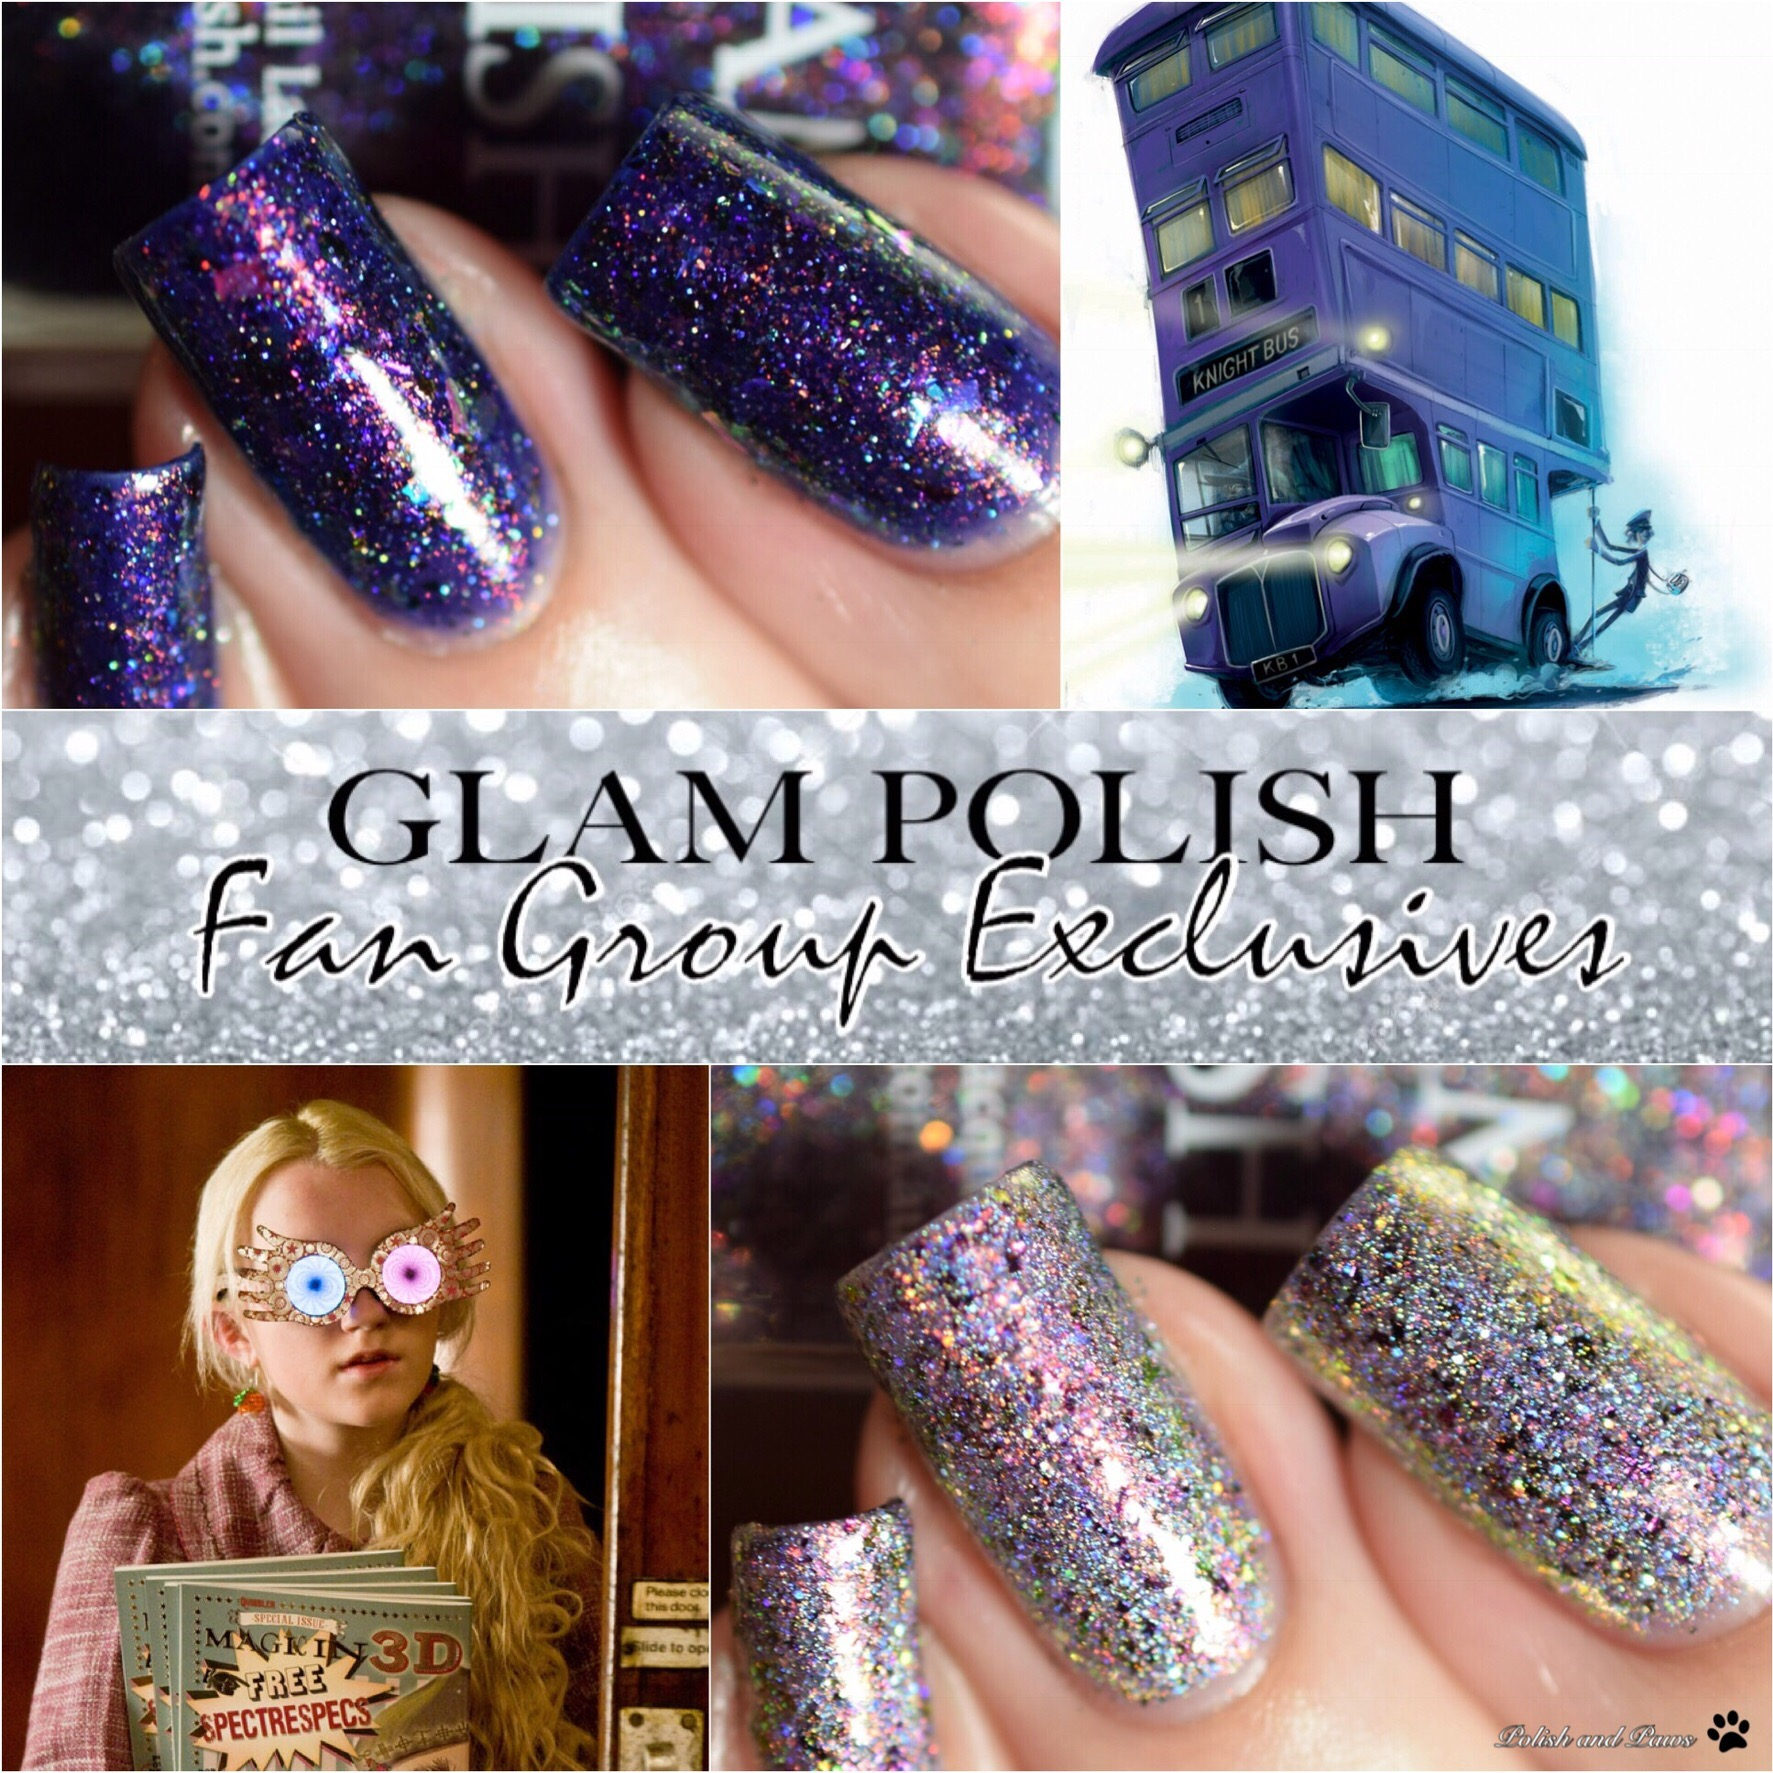 Glam Polish May Fan Group Exclusives